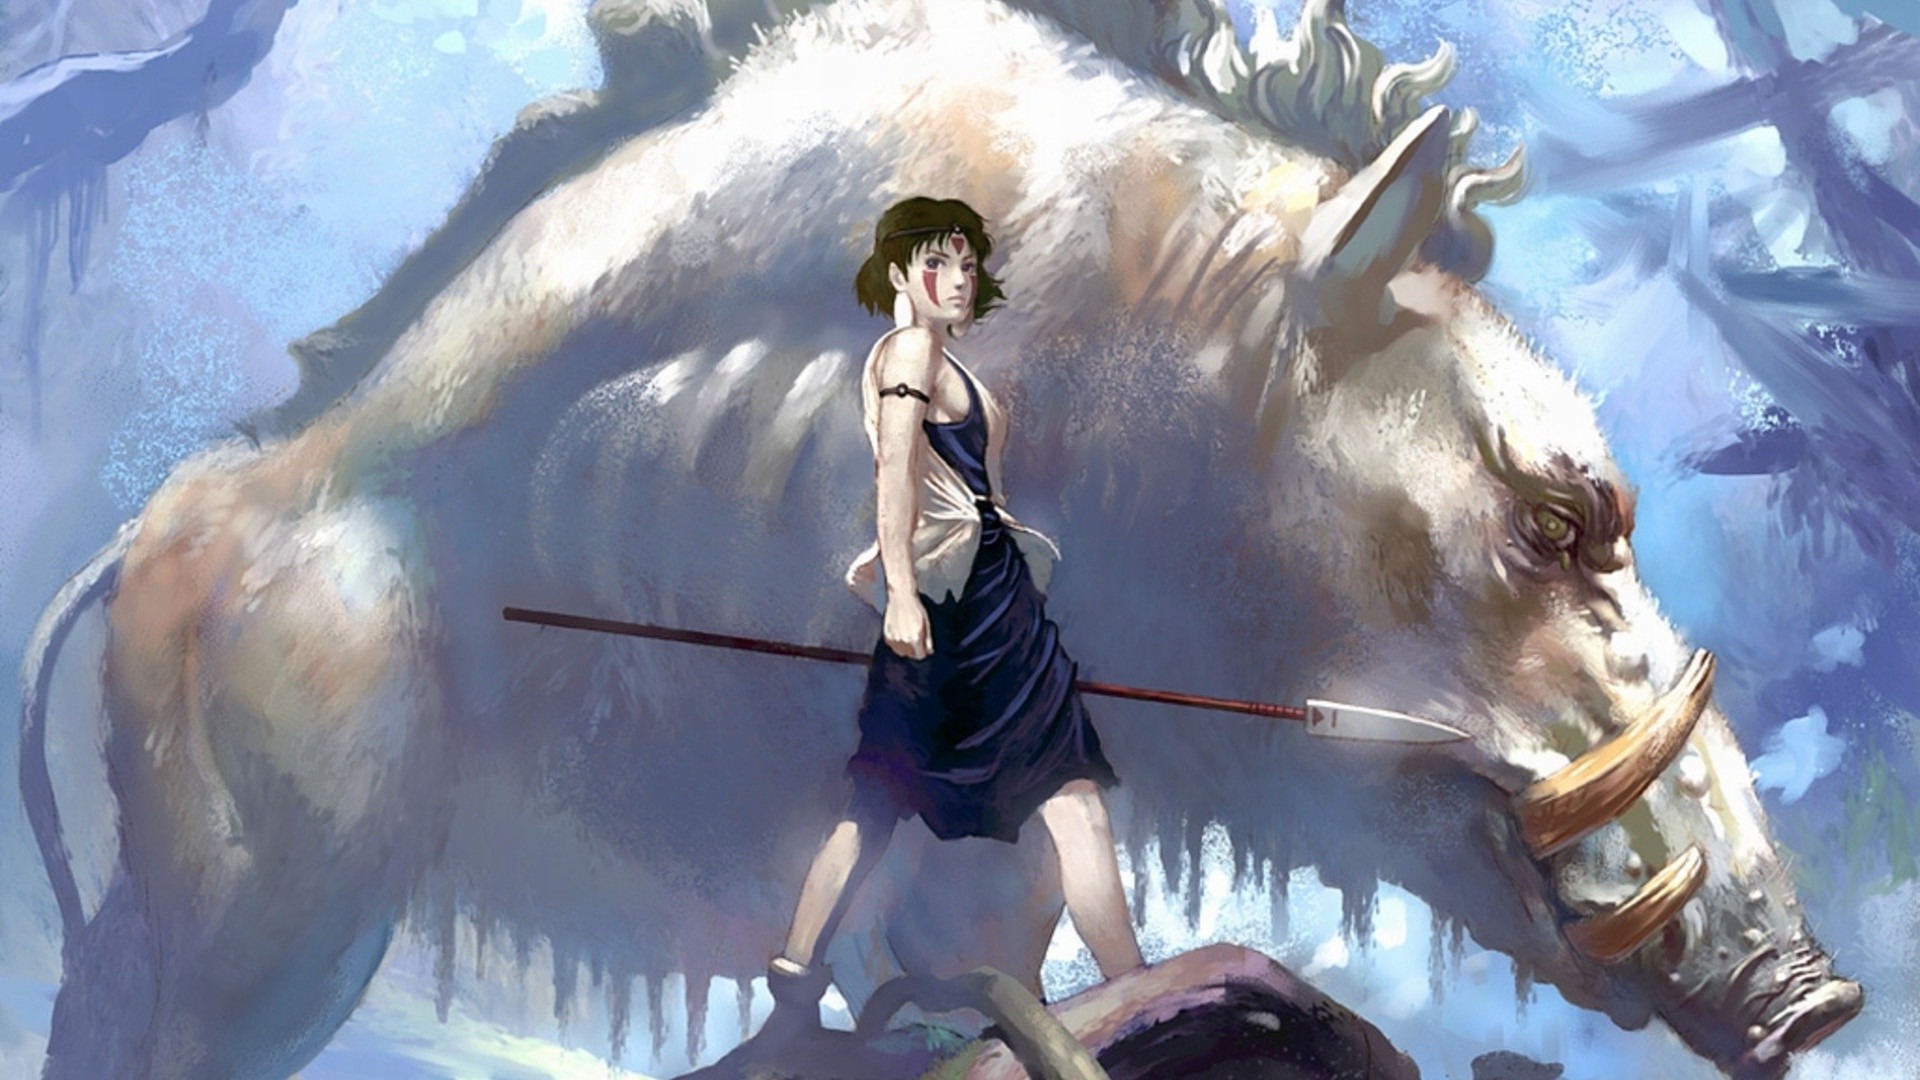 Princess Mononoke 1920x1080 Download Hd Wallpaper Wallpapertip